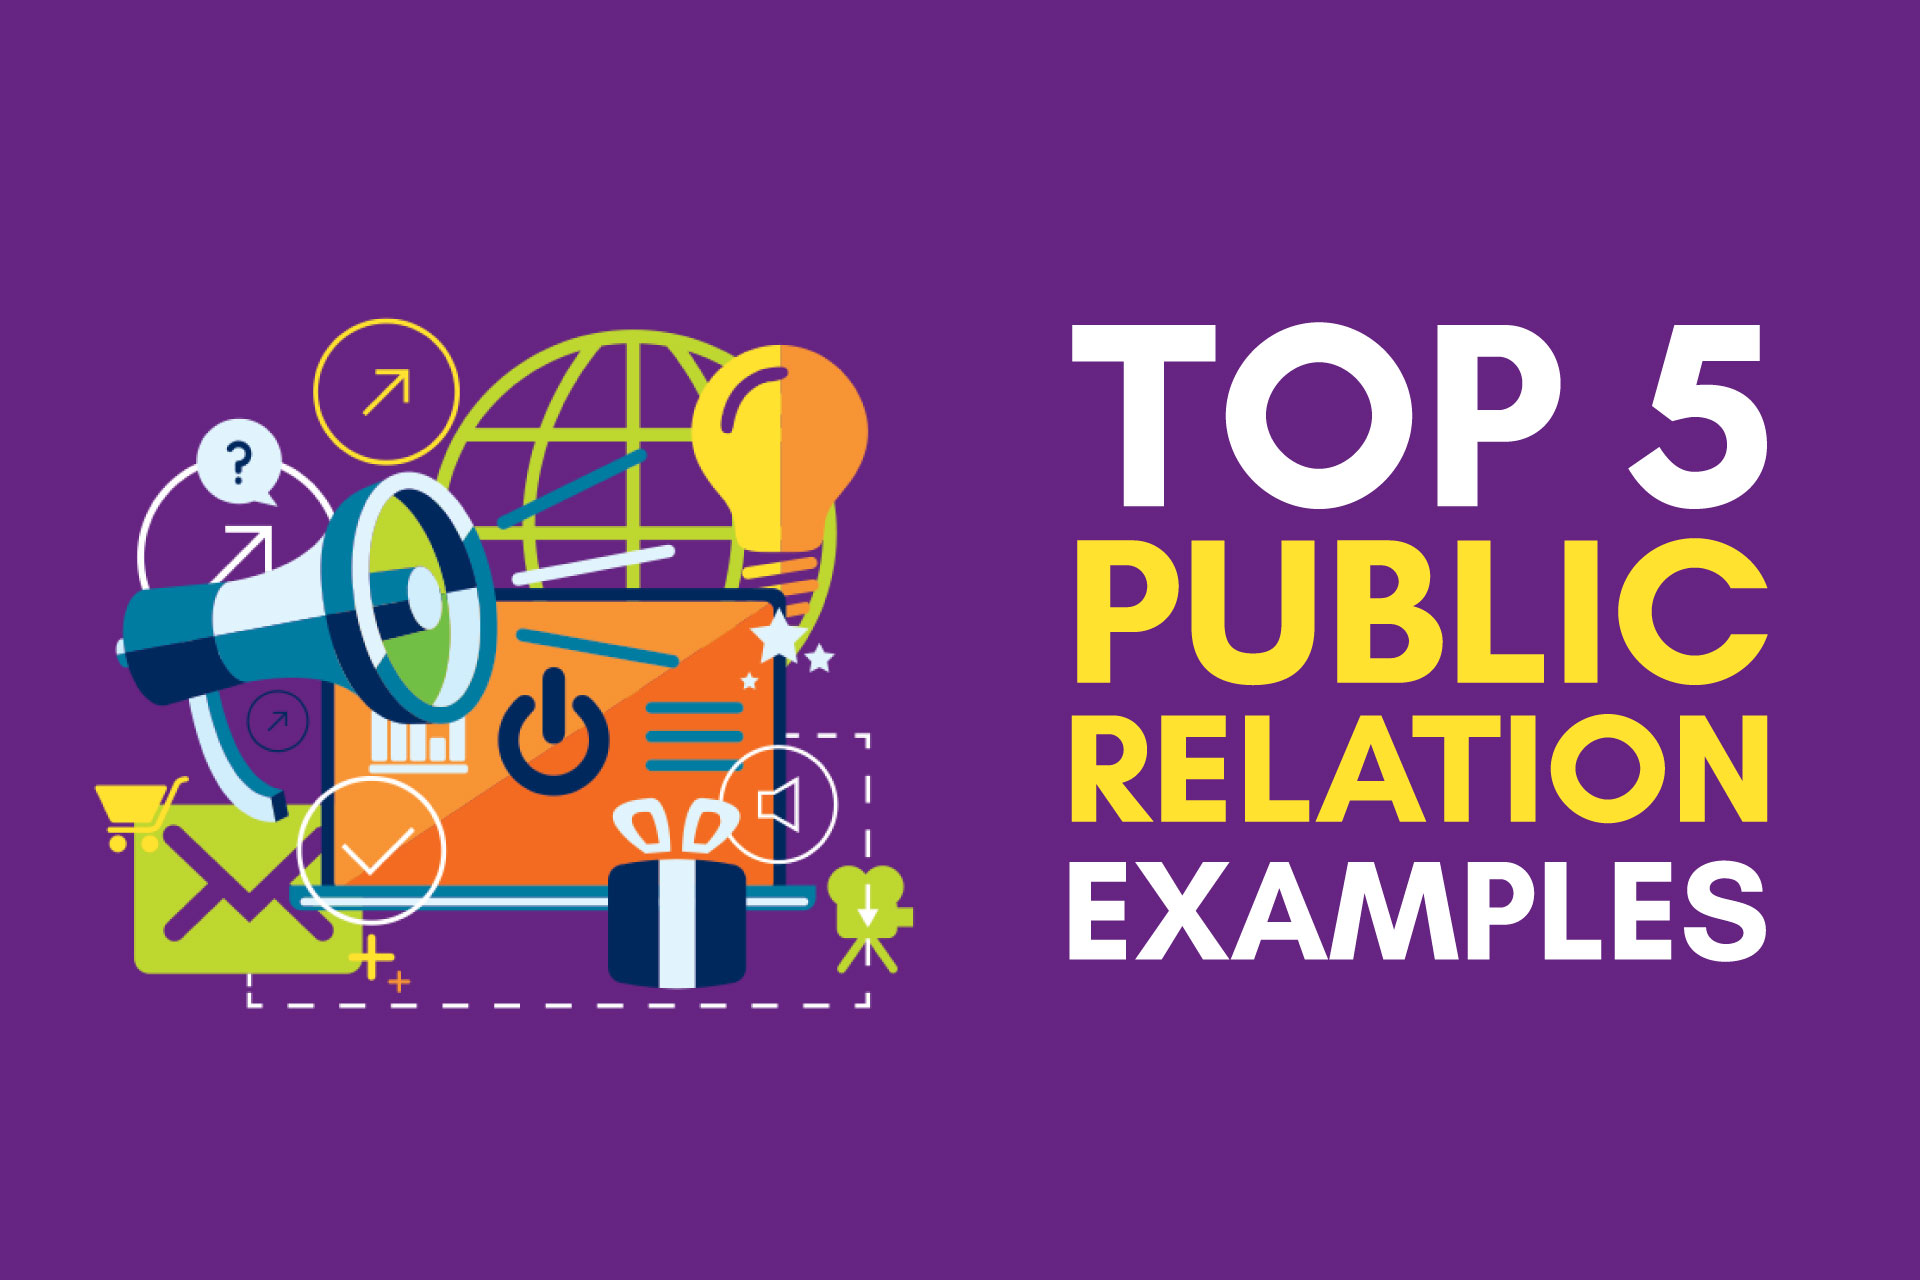 Top 5 Public Relation Examples